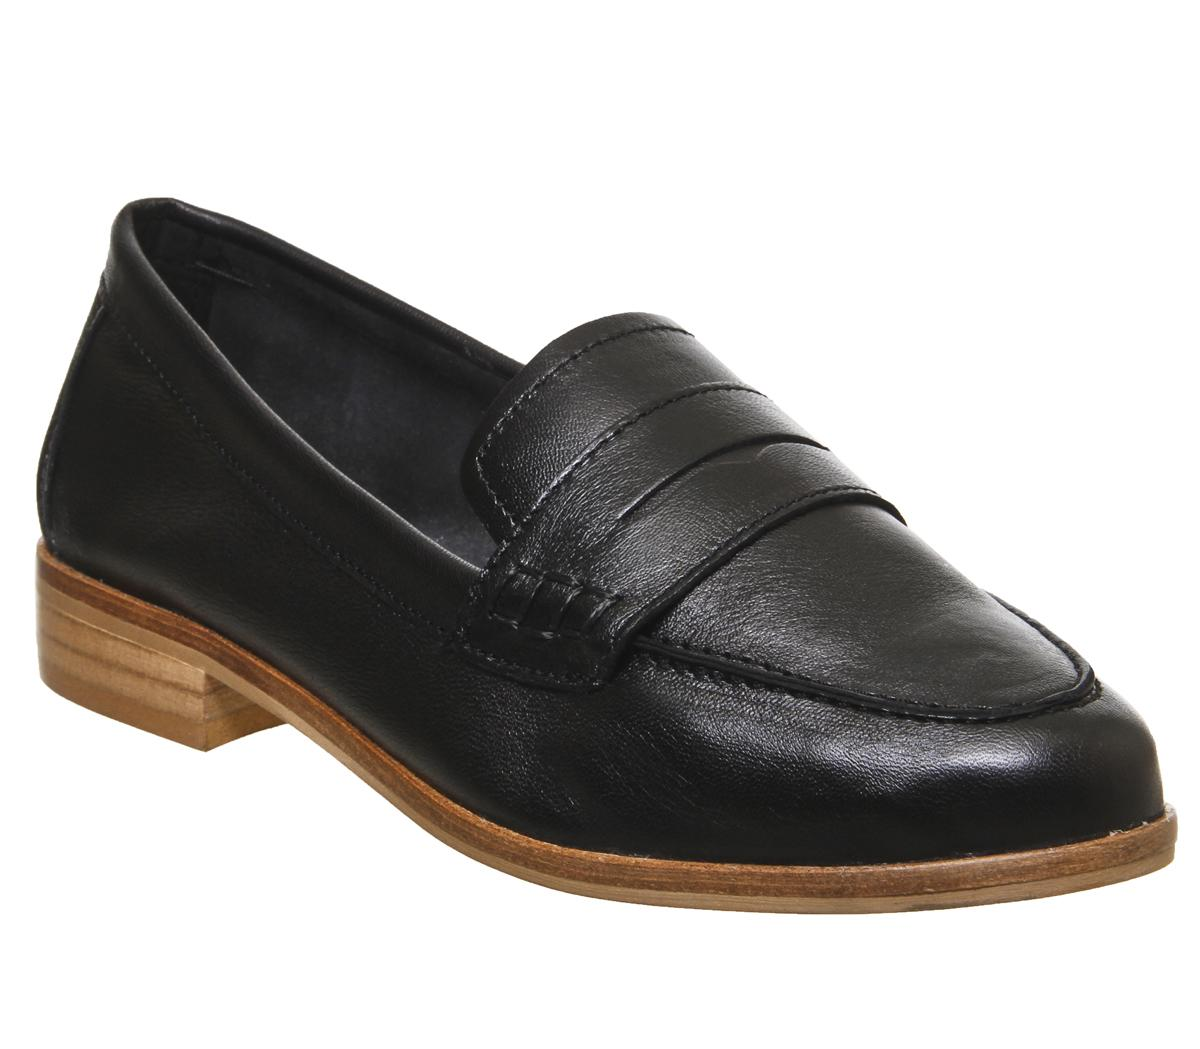 Womens Office Friendship Soft Loafer Black Leather